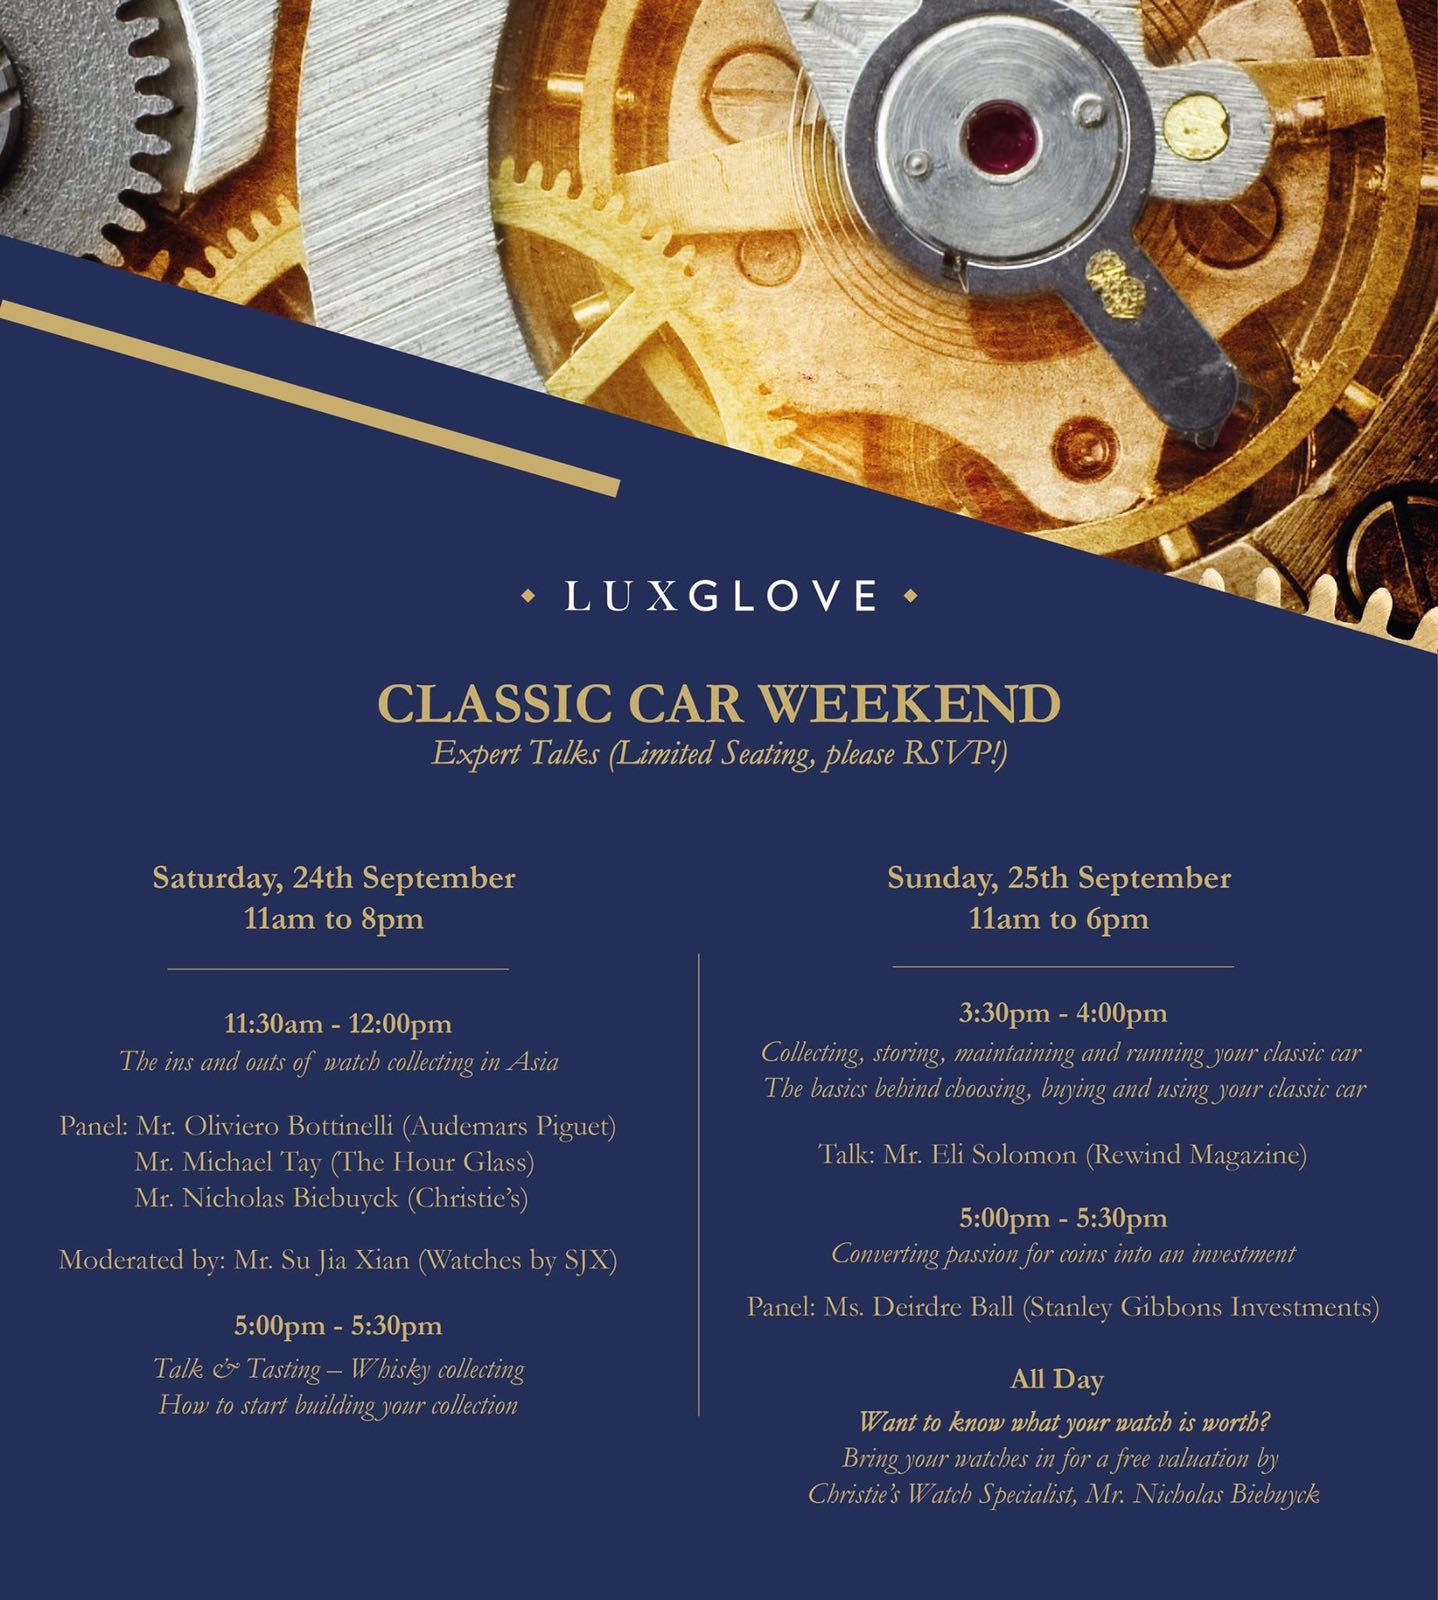 Luxglove Classic Car Weekend 2016